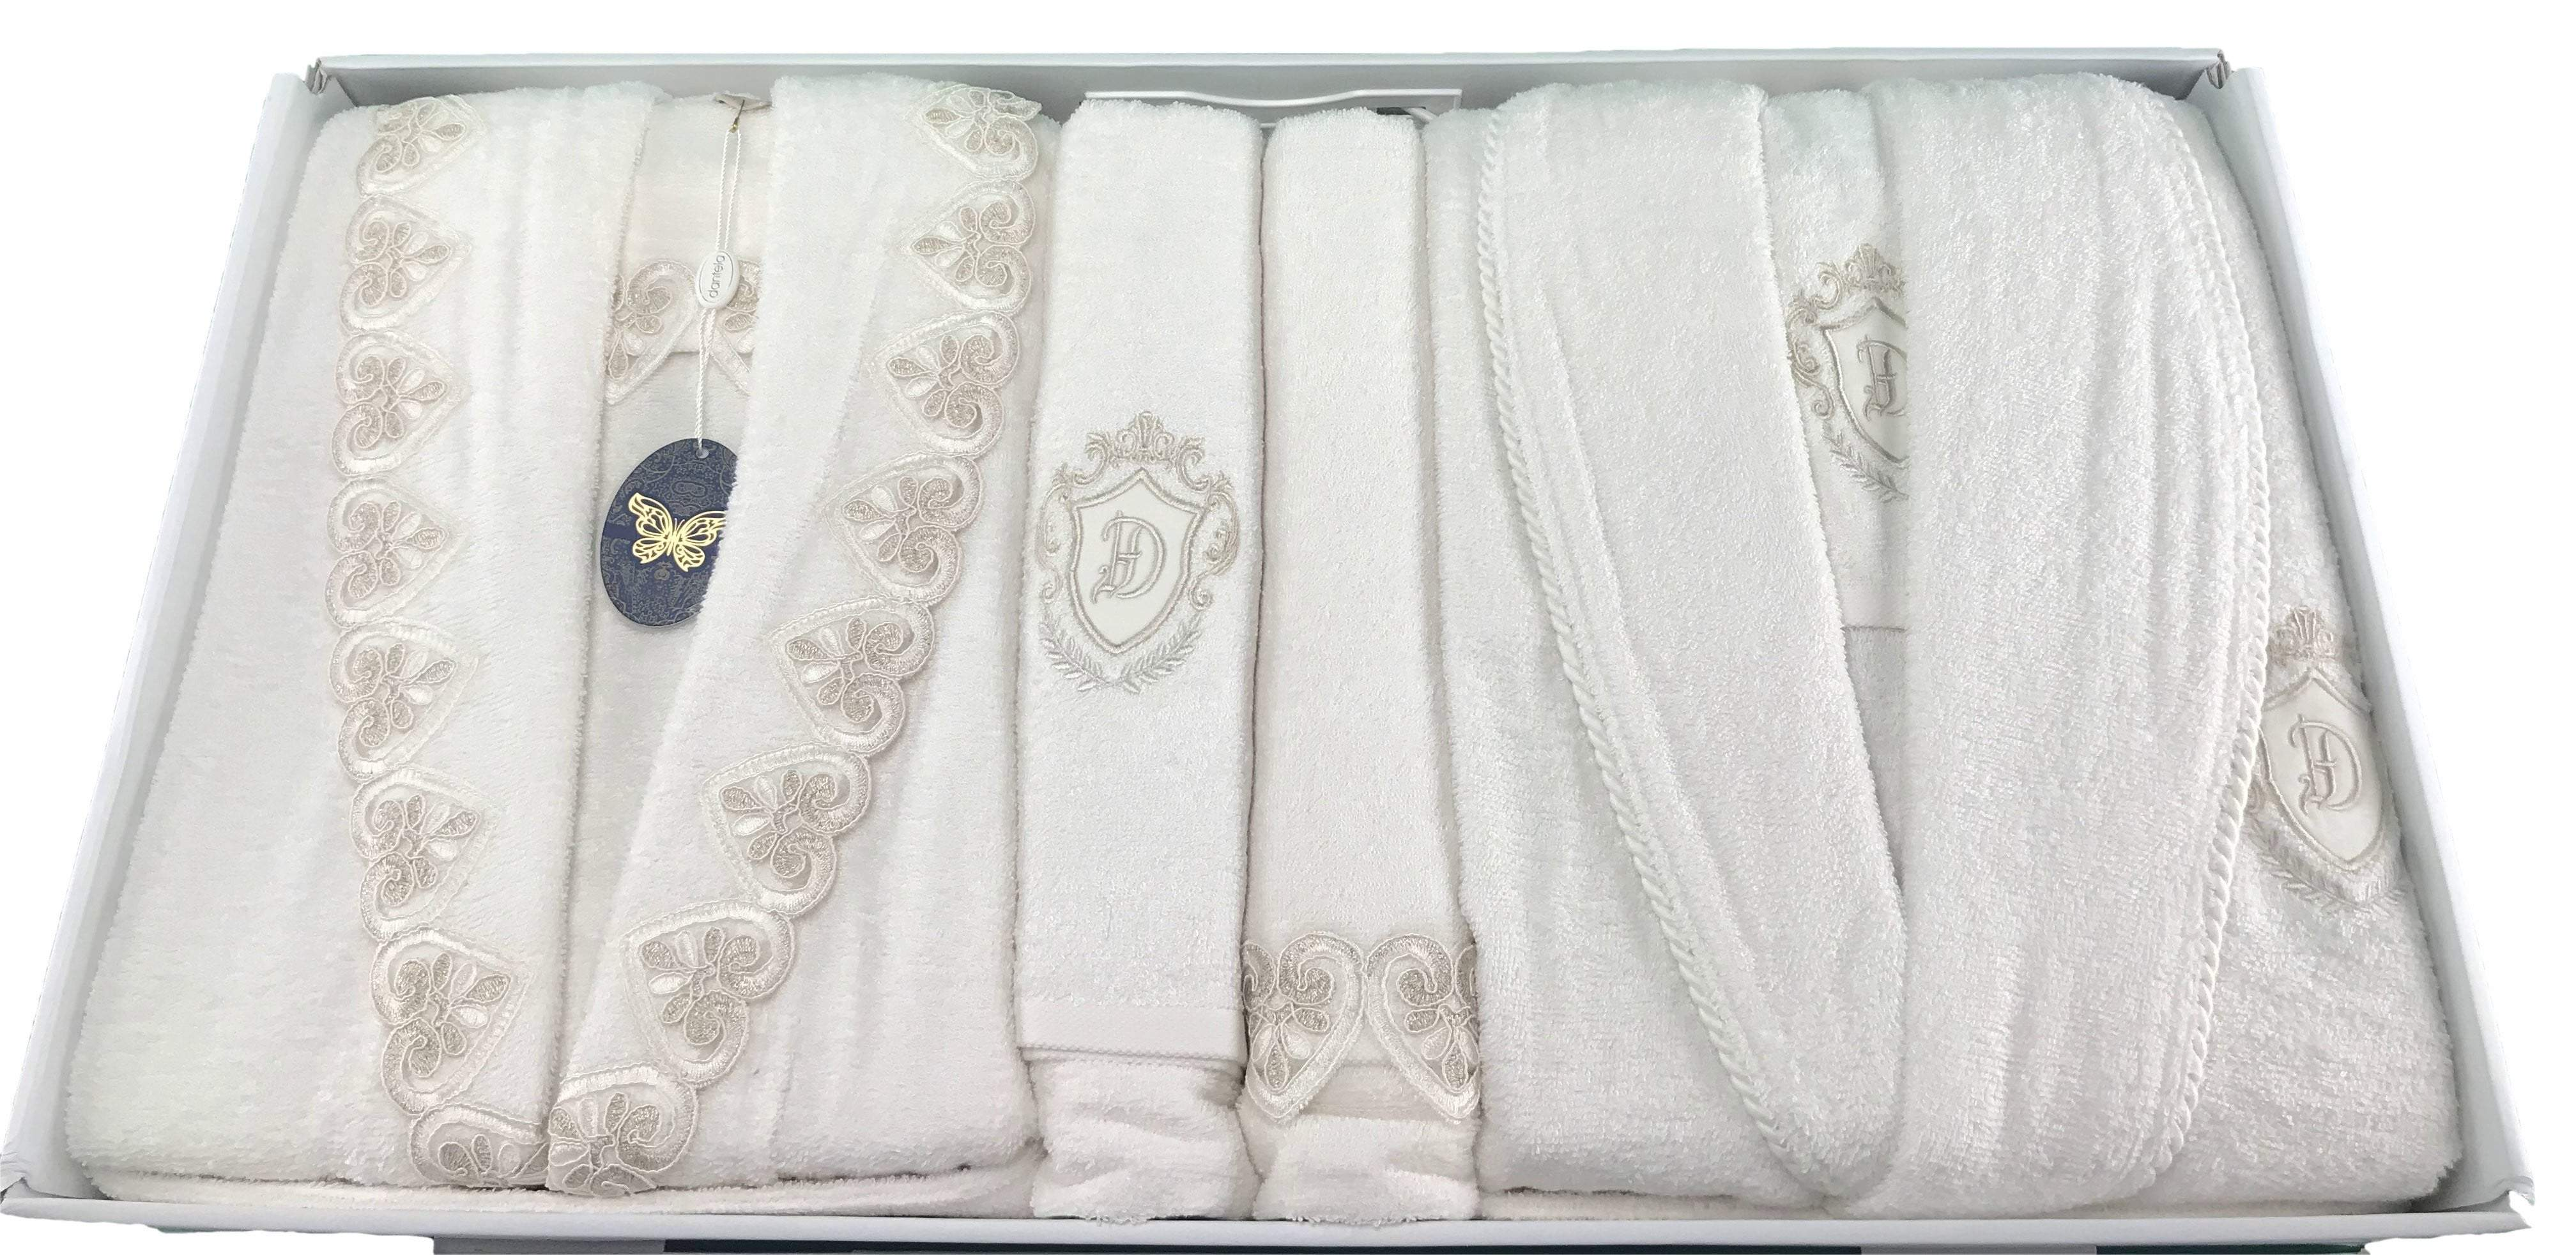 LOVE Bridal Towel Set